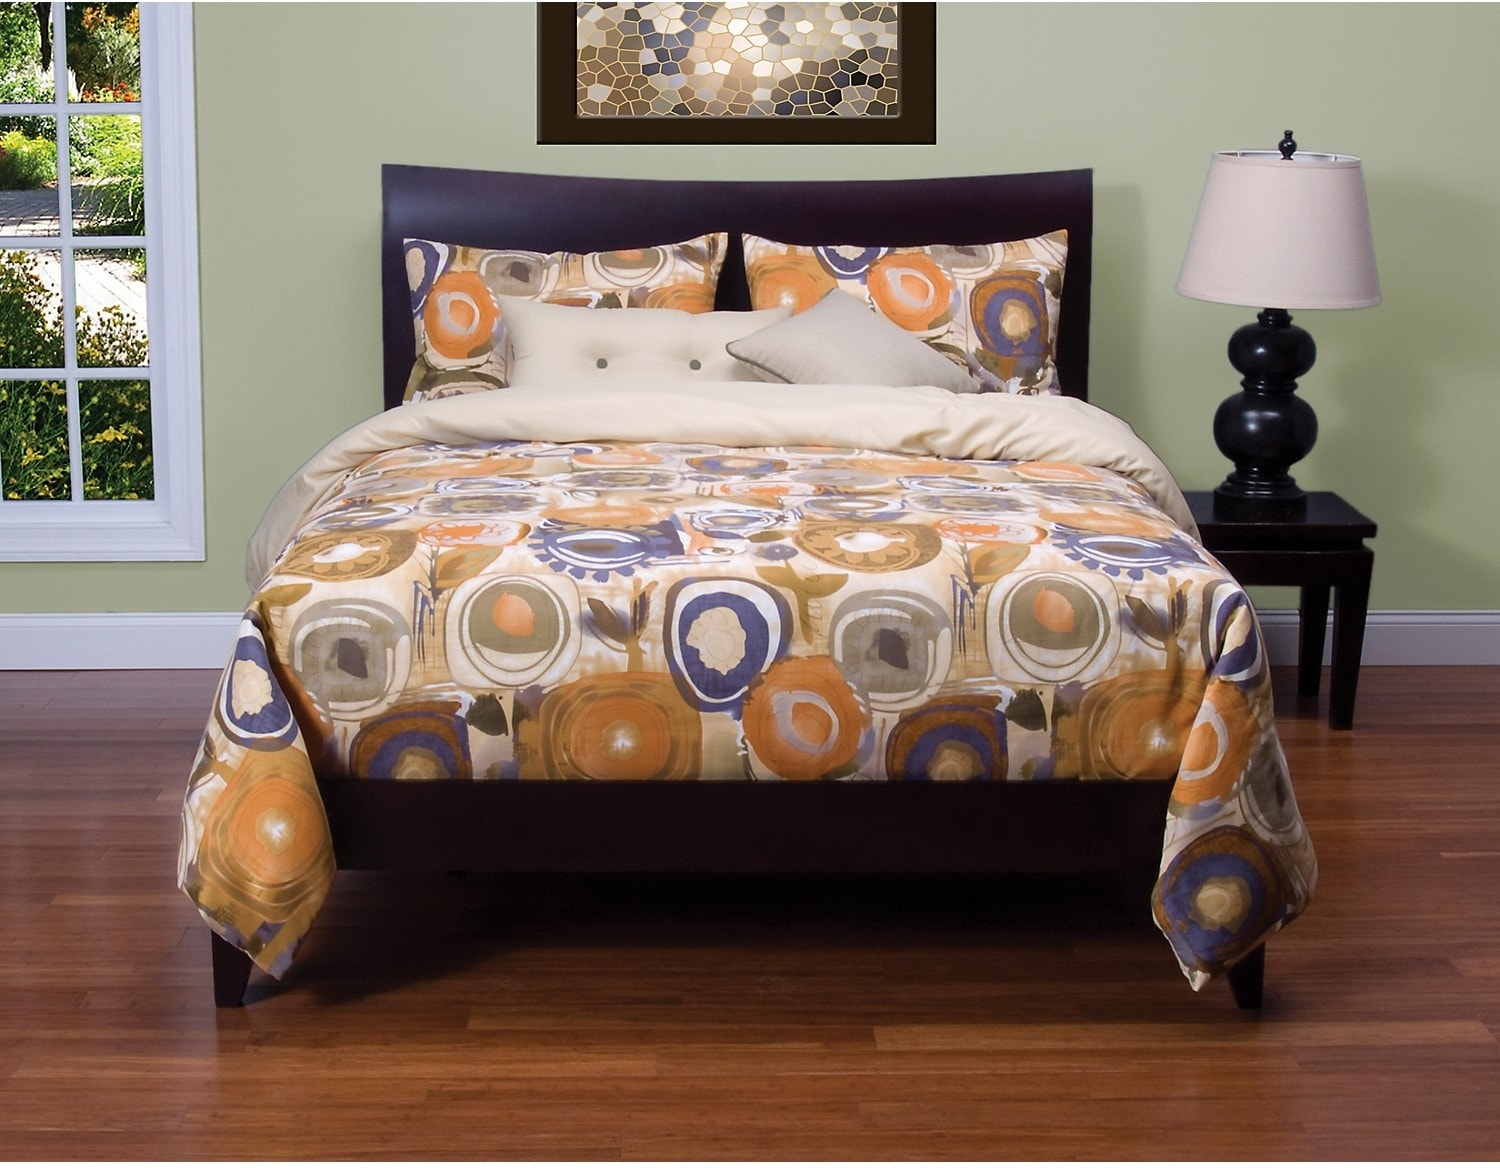 Mattresses and Bedding - Enchanted Maze Reversible 4 Piece King Duvet Cover Set